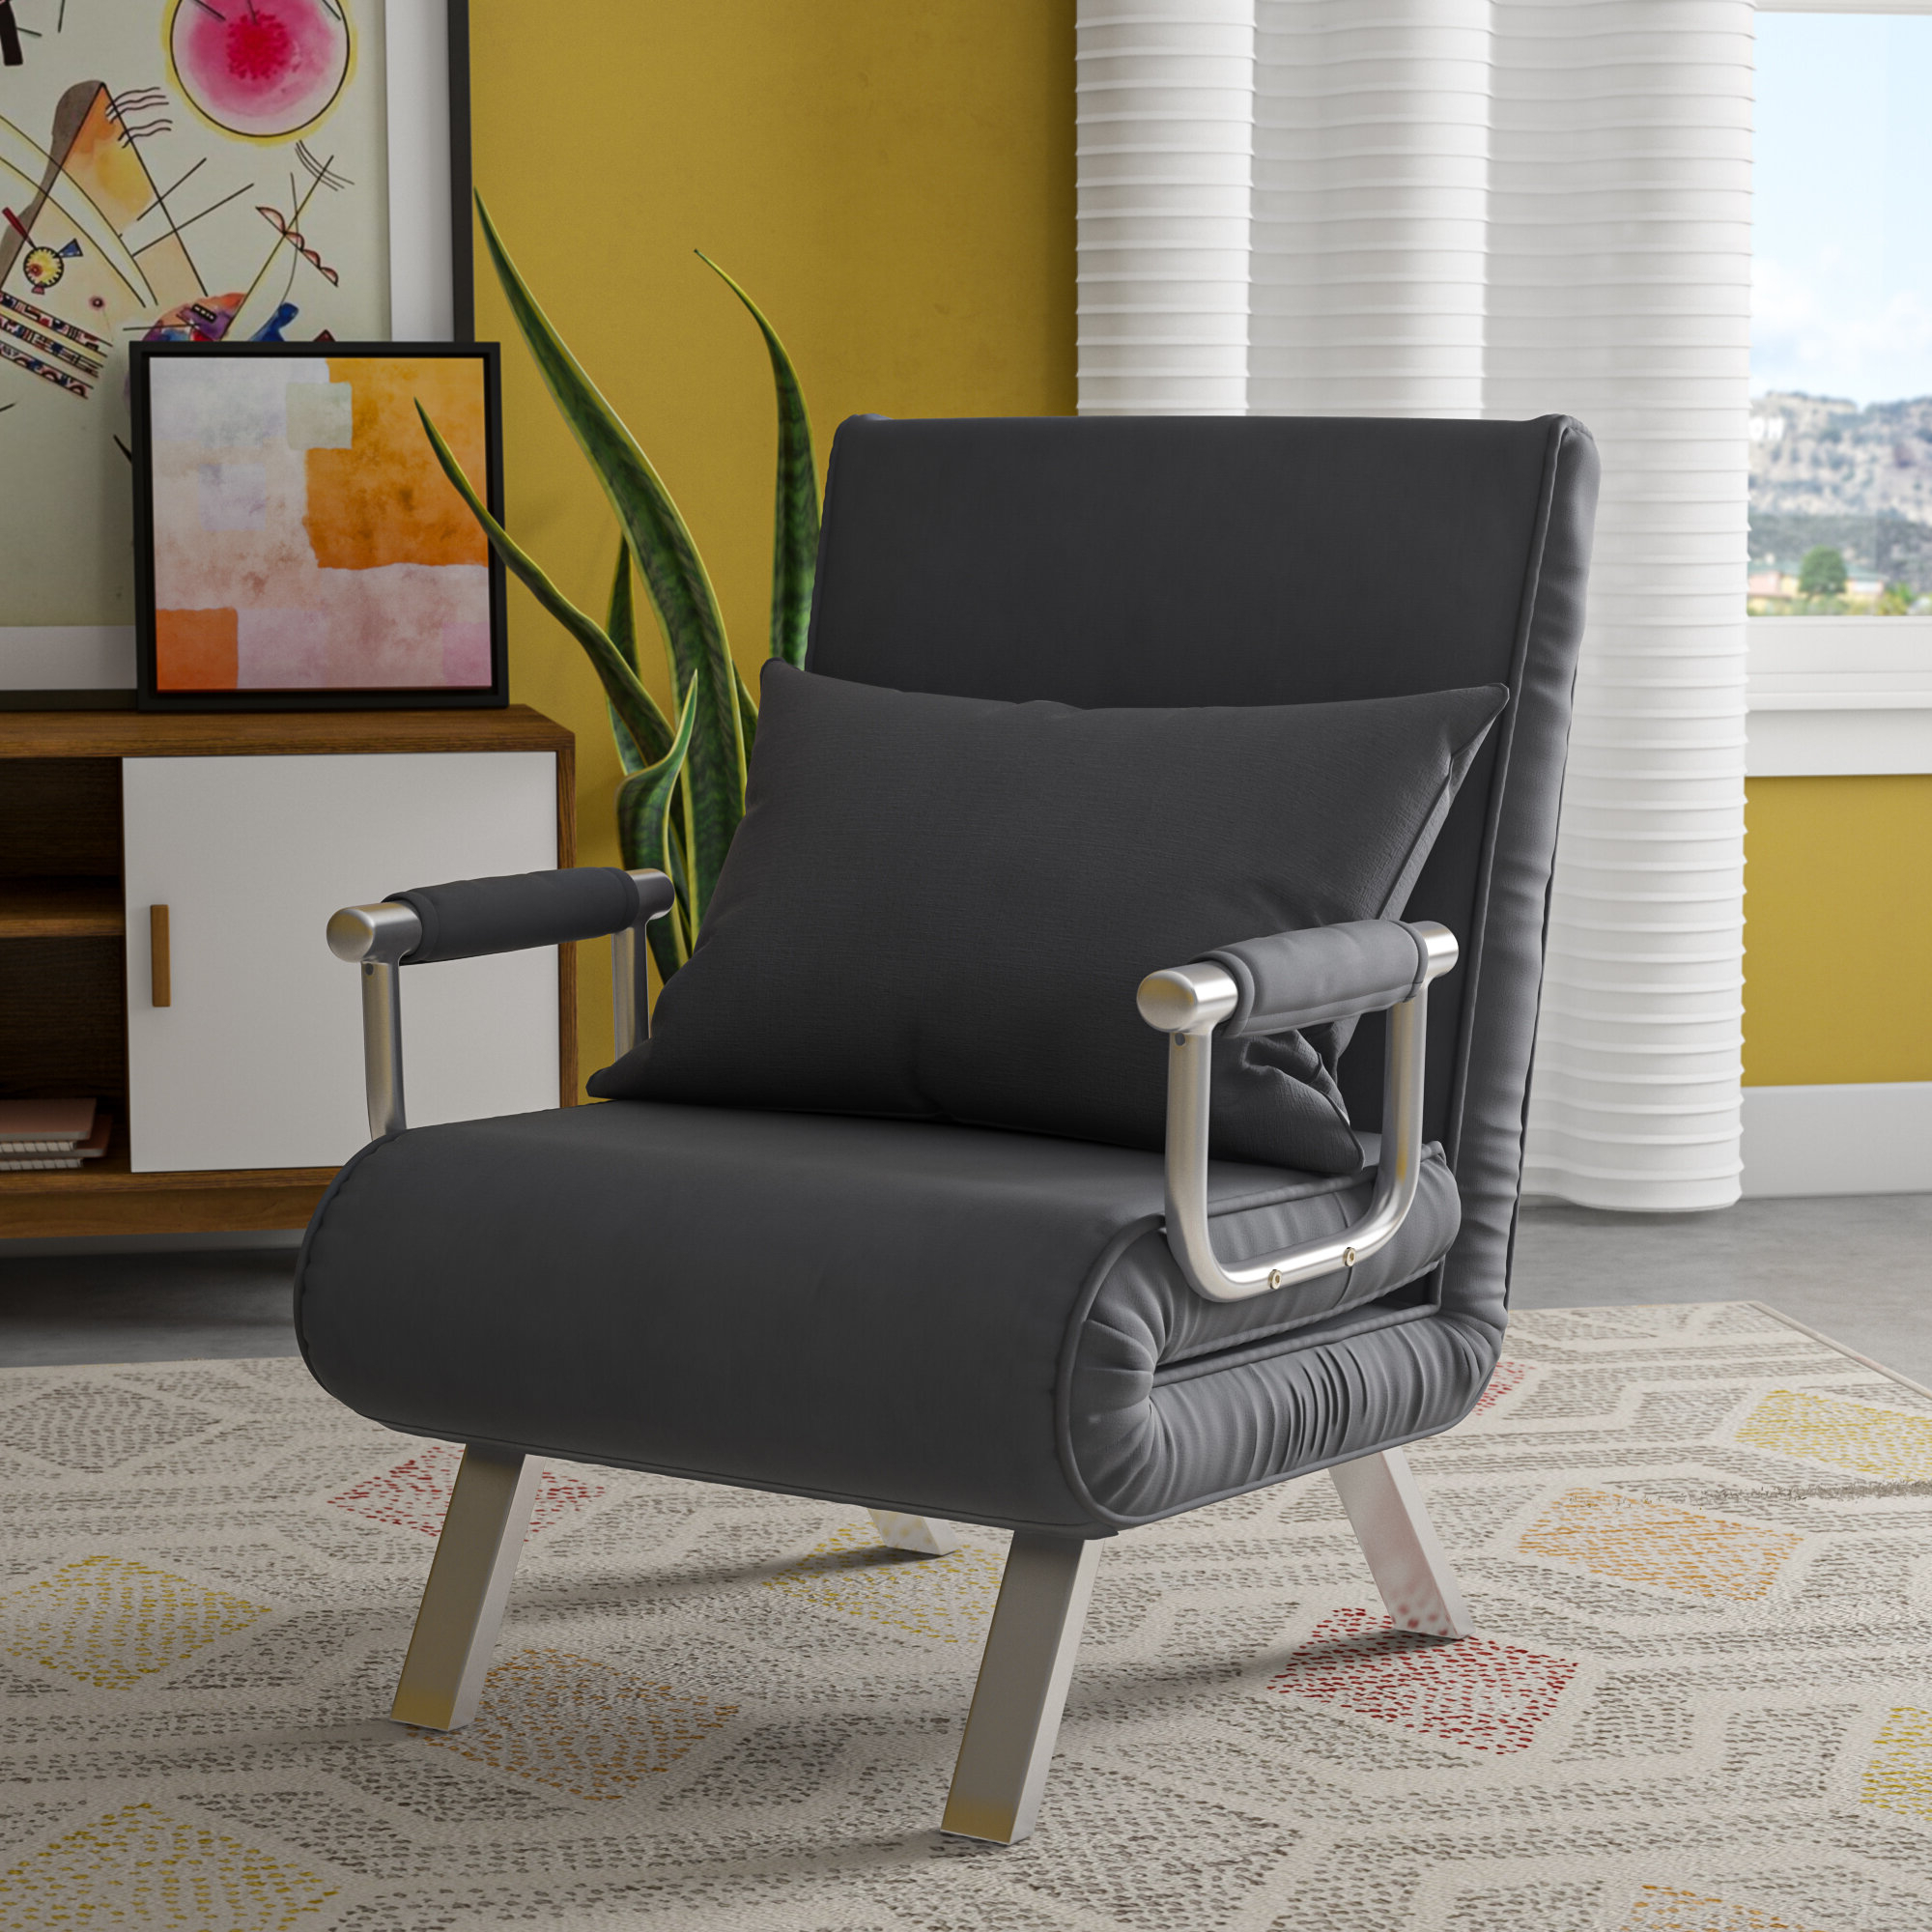 Longoria Convertible Chair Intended For Widely Used Perz Tufted Faux Leather Convertible Chairs (View 15 of 20)